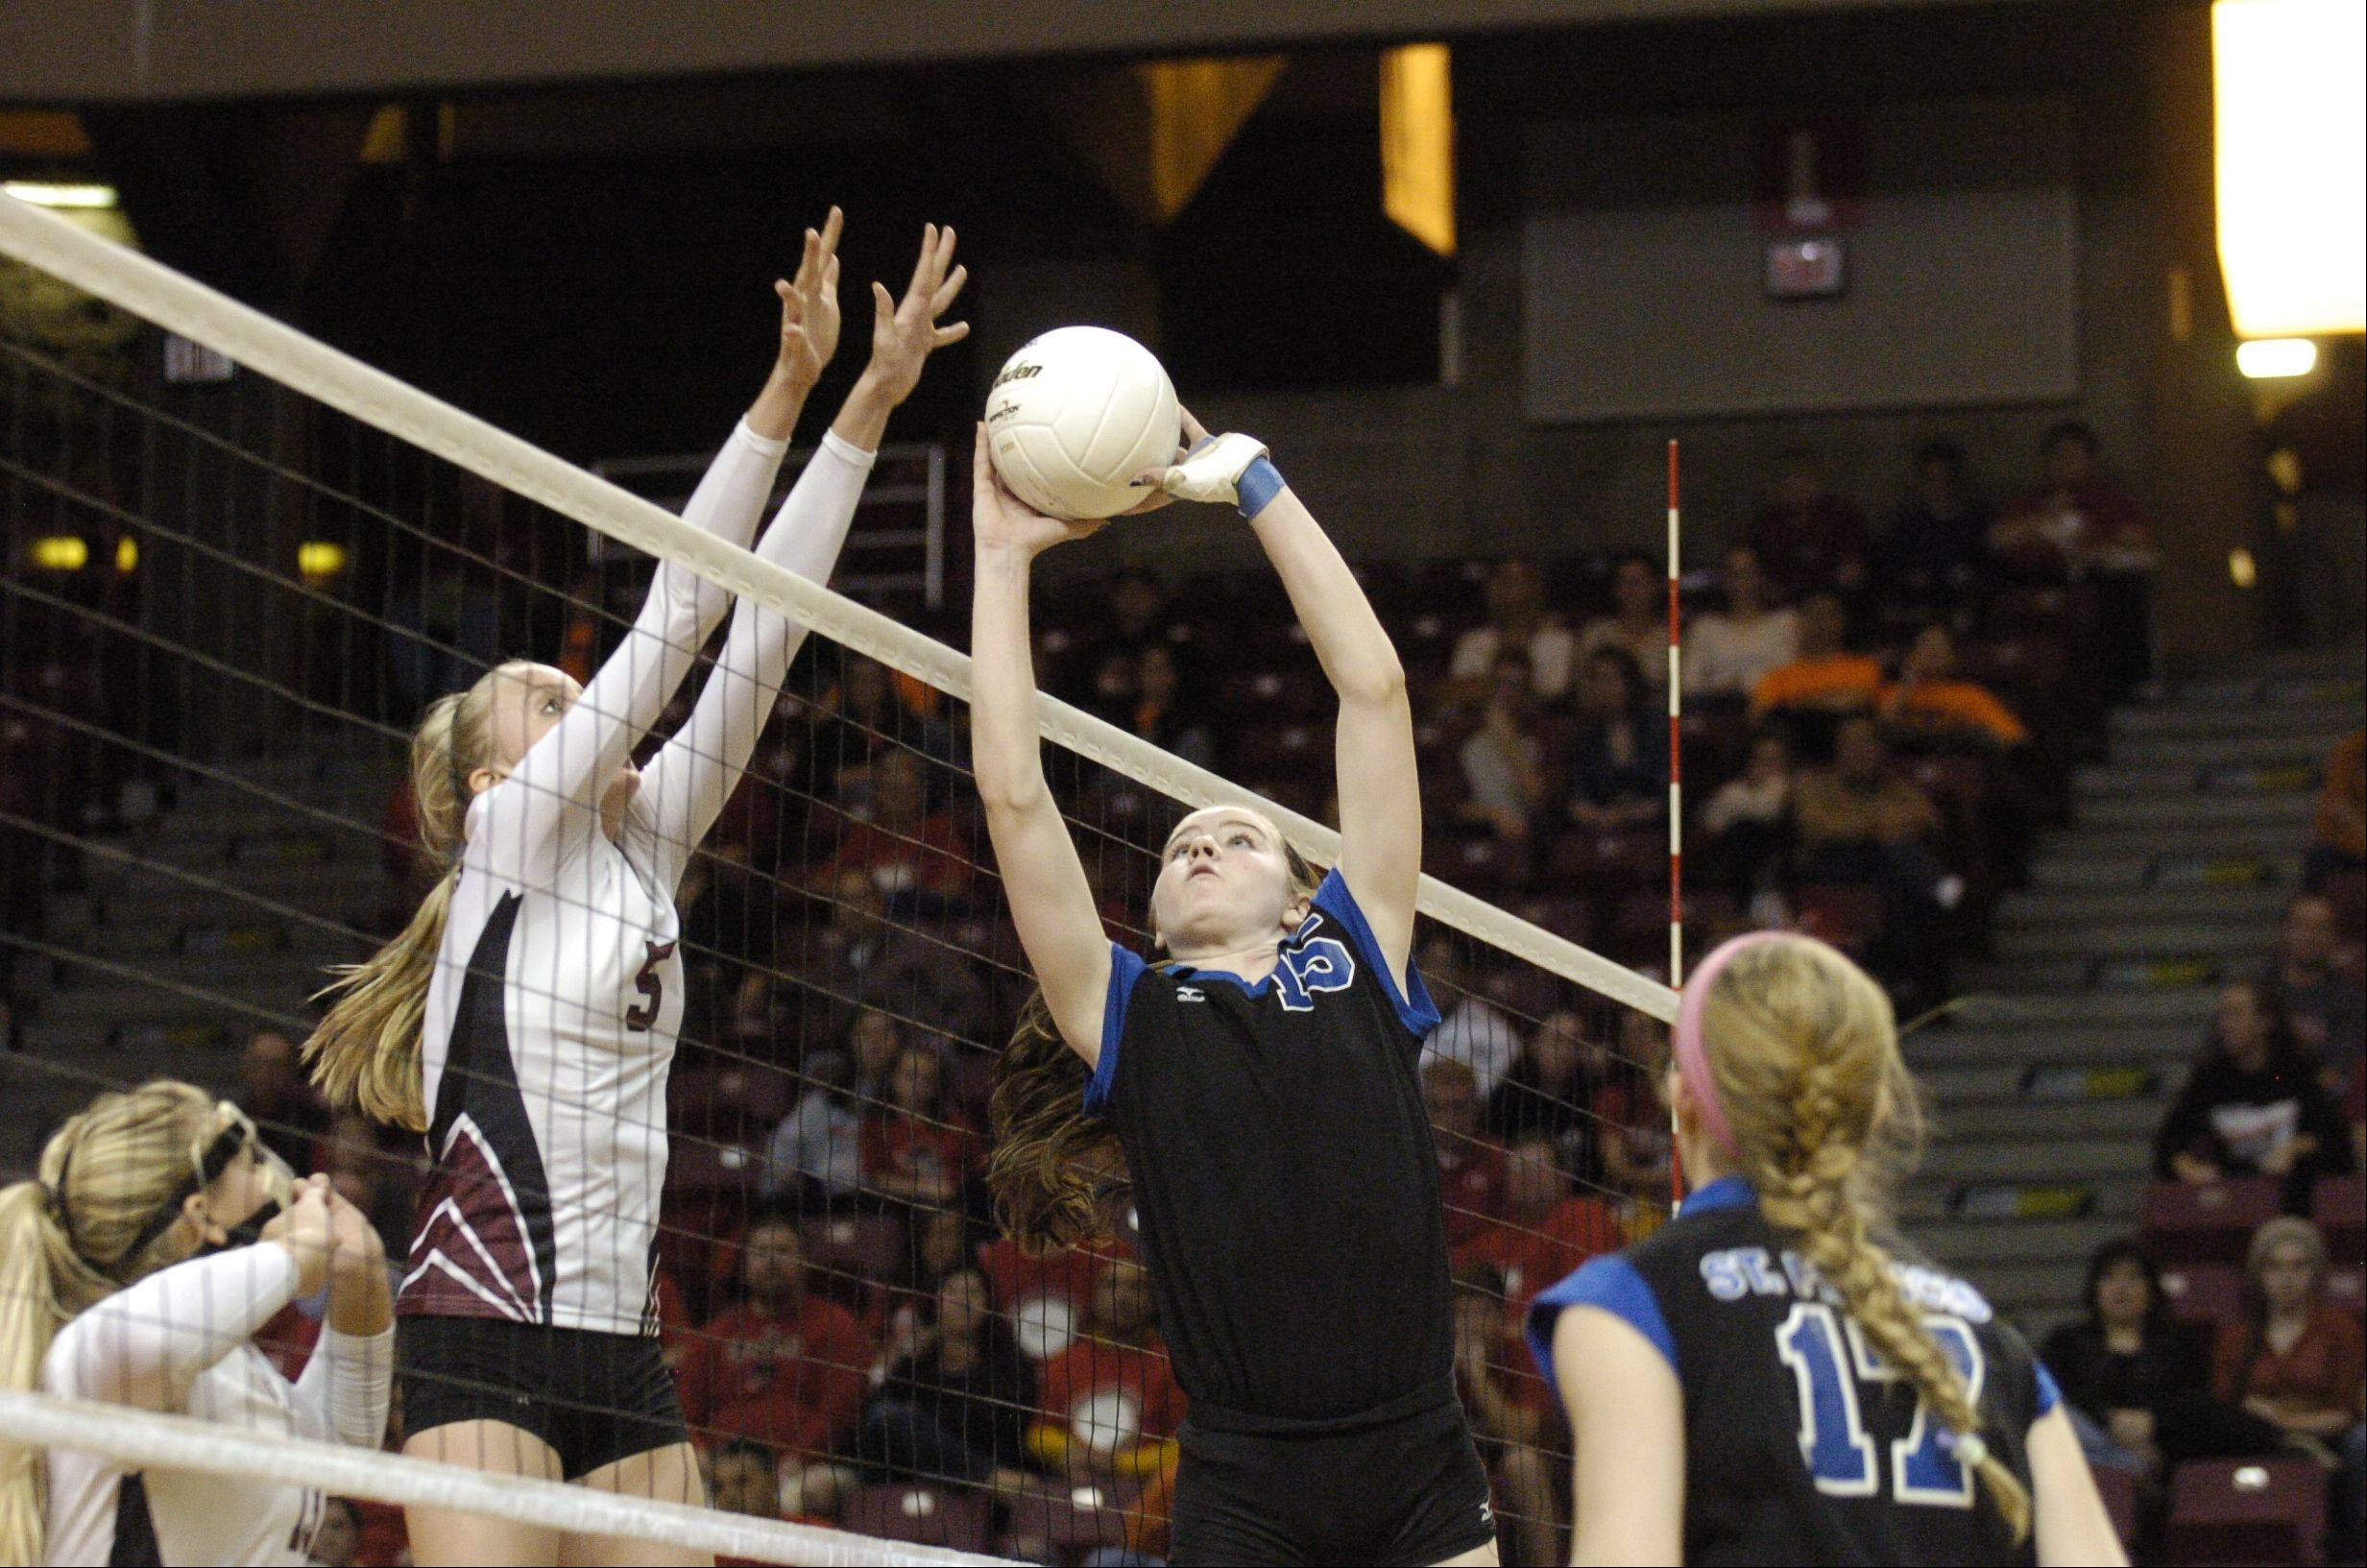 Images from the IHSA Class 3A girls volleyball championship game between Wheaton St. Francis and Richmond-Burton at Redbird Arena at Illinois State University Saturday November 10, 2012.